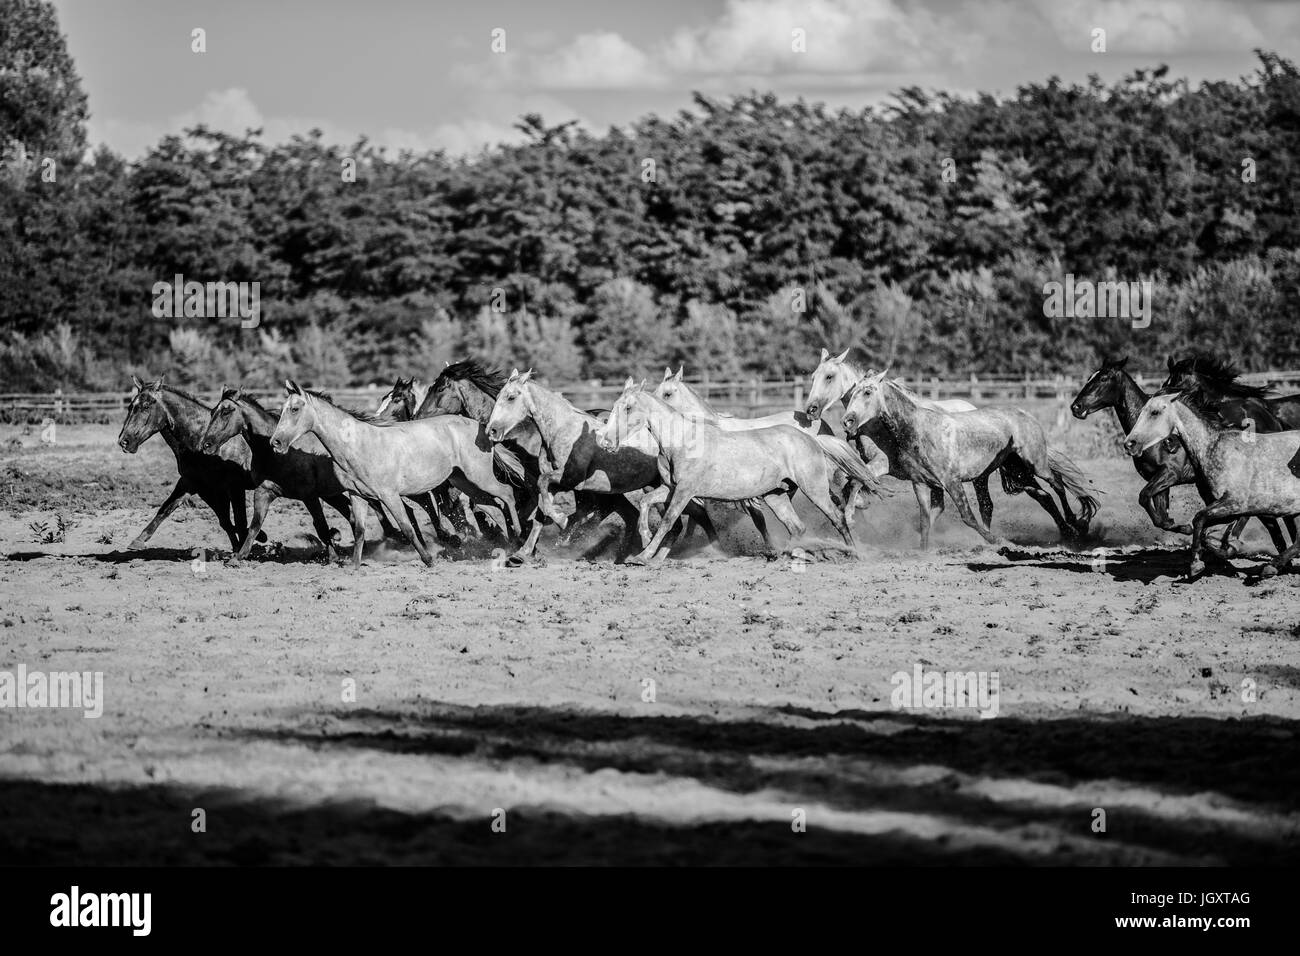 Black and white colored photo of running horses summertime - Stock Image